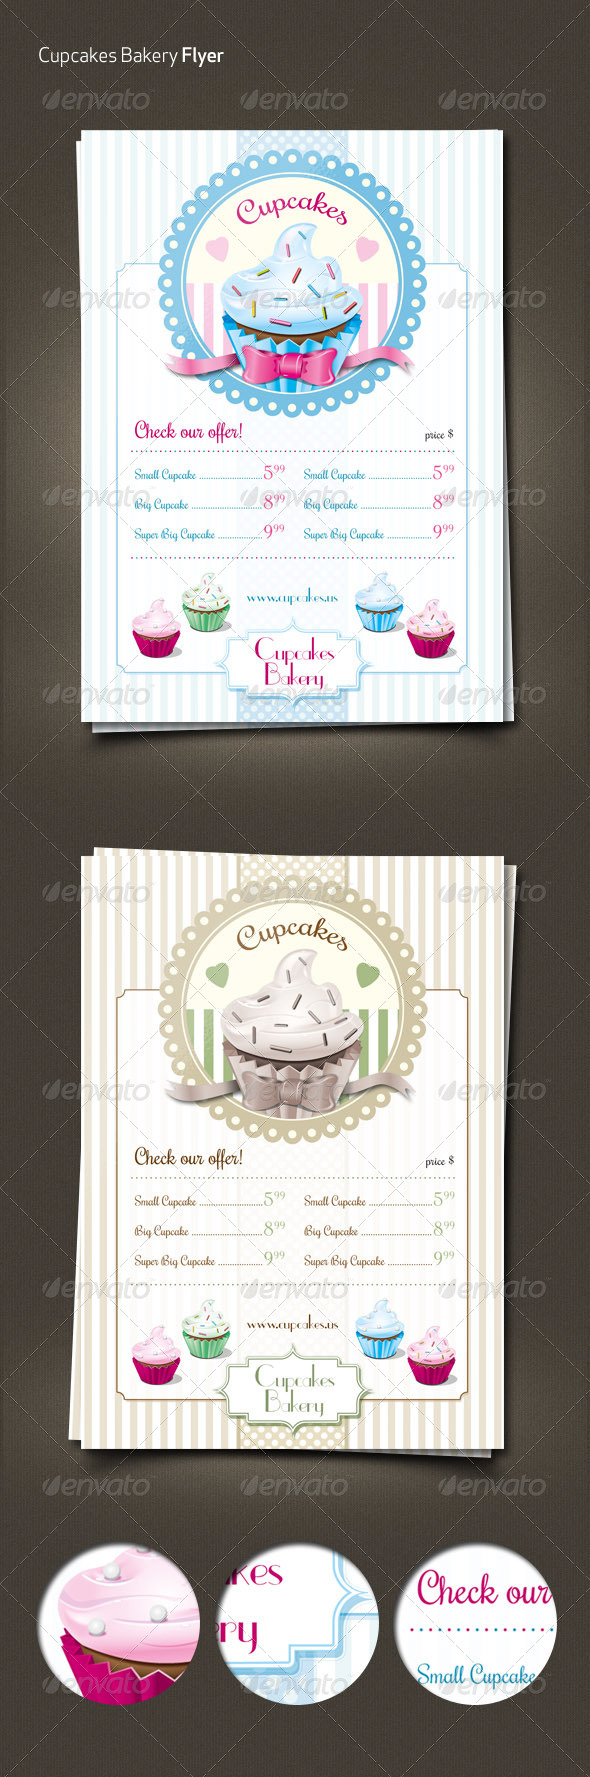 Cupcakes Retro Menu Flyer - Food Menus Print Templates